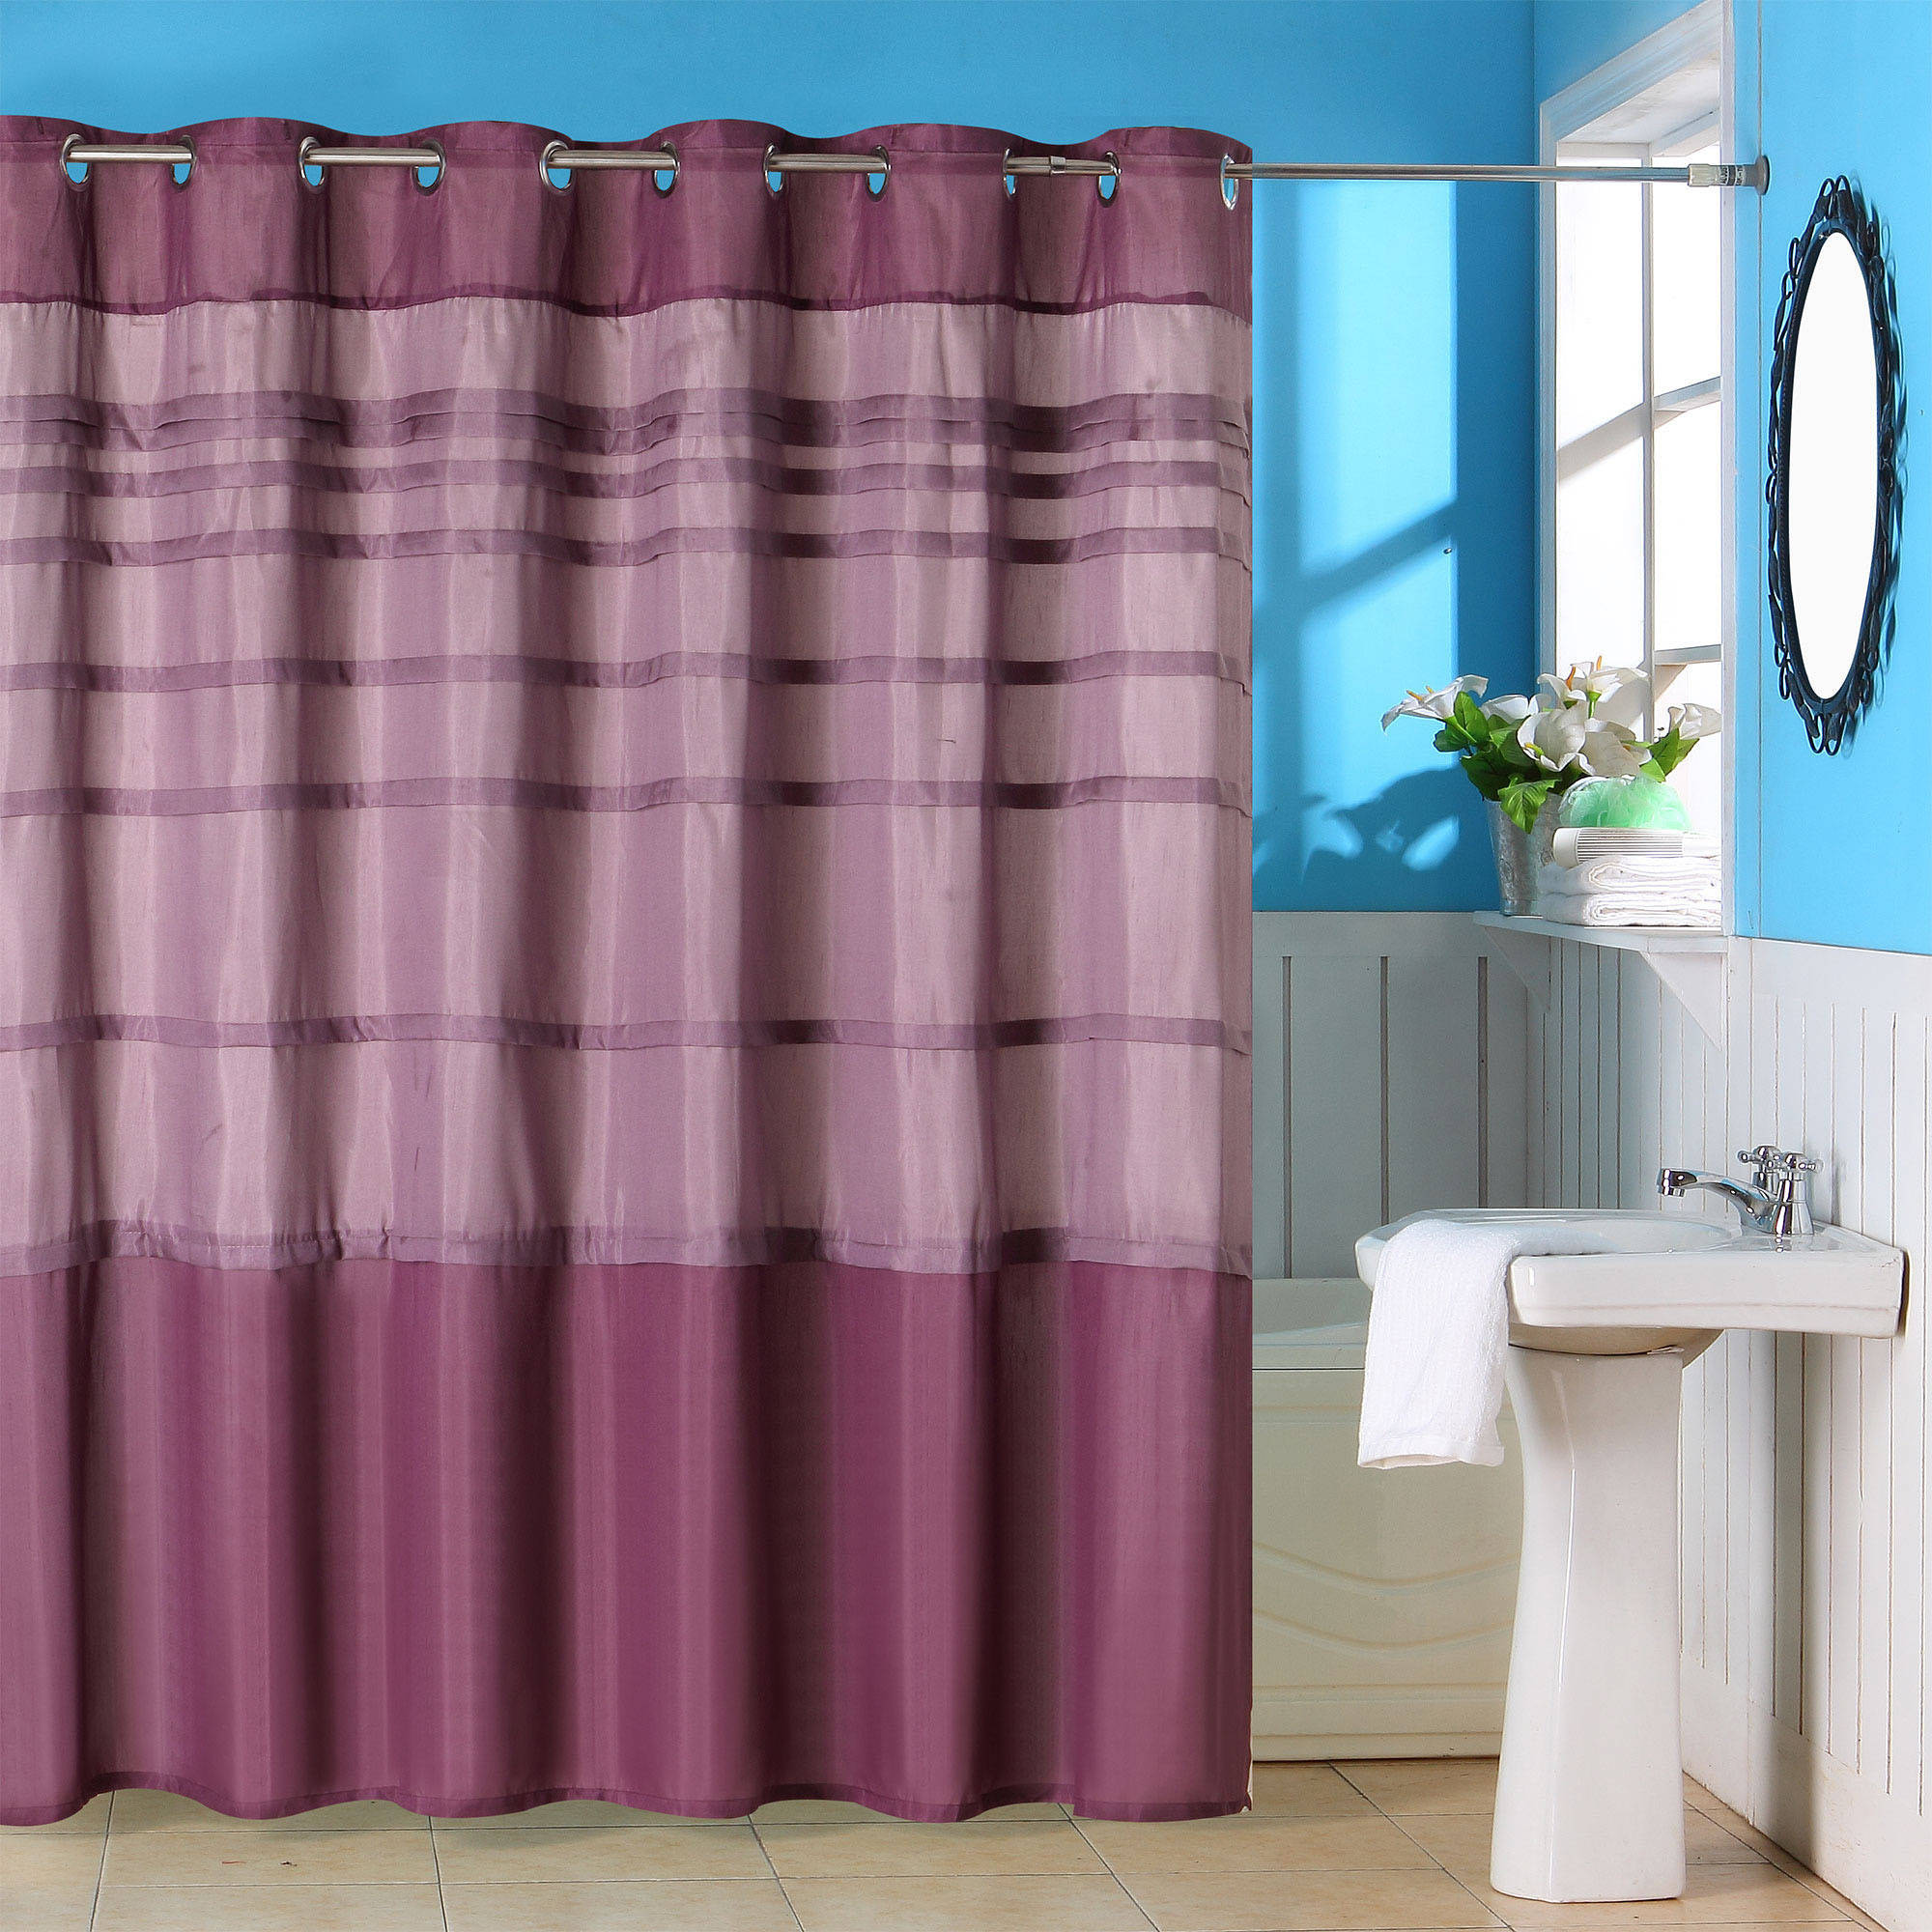 Orleans Pintuck Shower Curtain with Buttonholes by Somerset Home